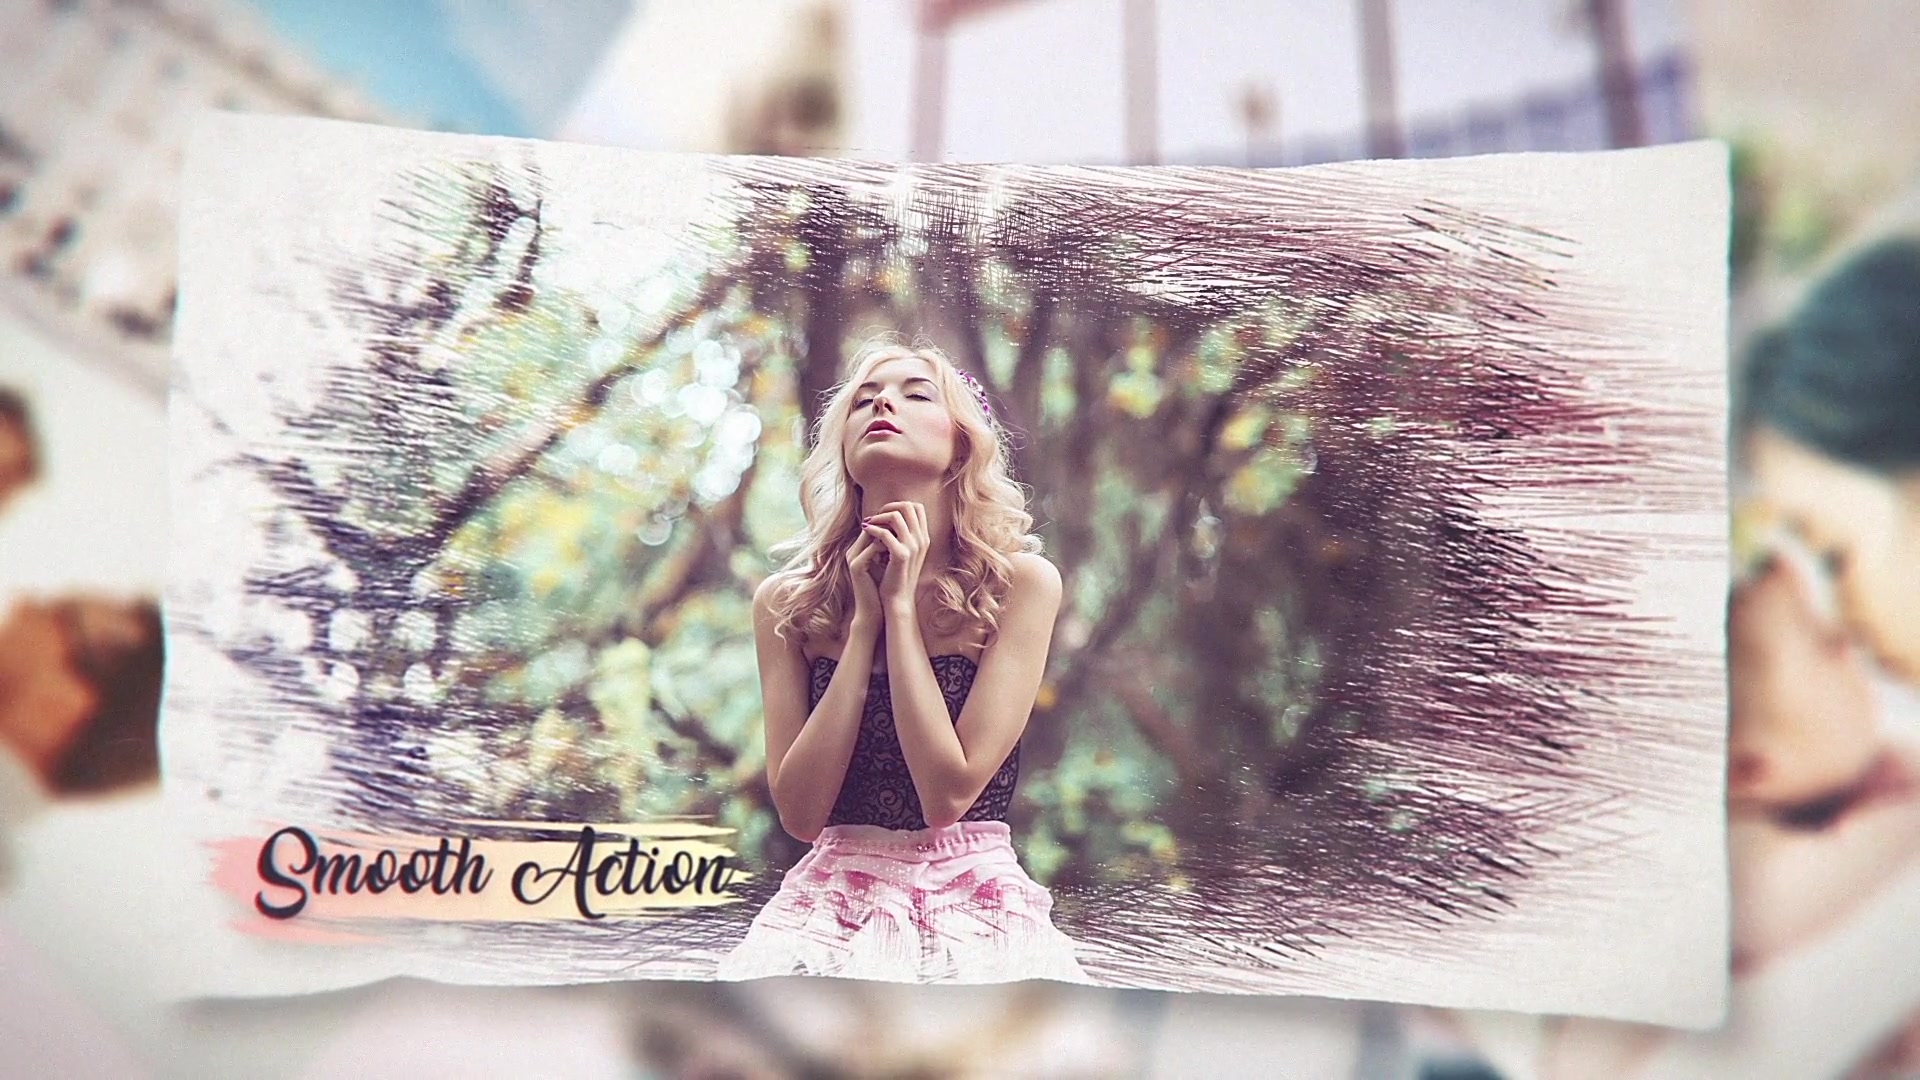 Photo Slideshow - Download Videohive 22043753